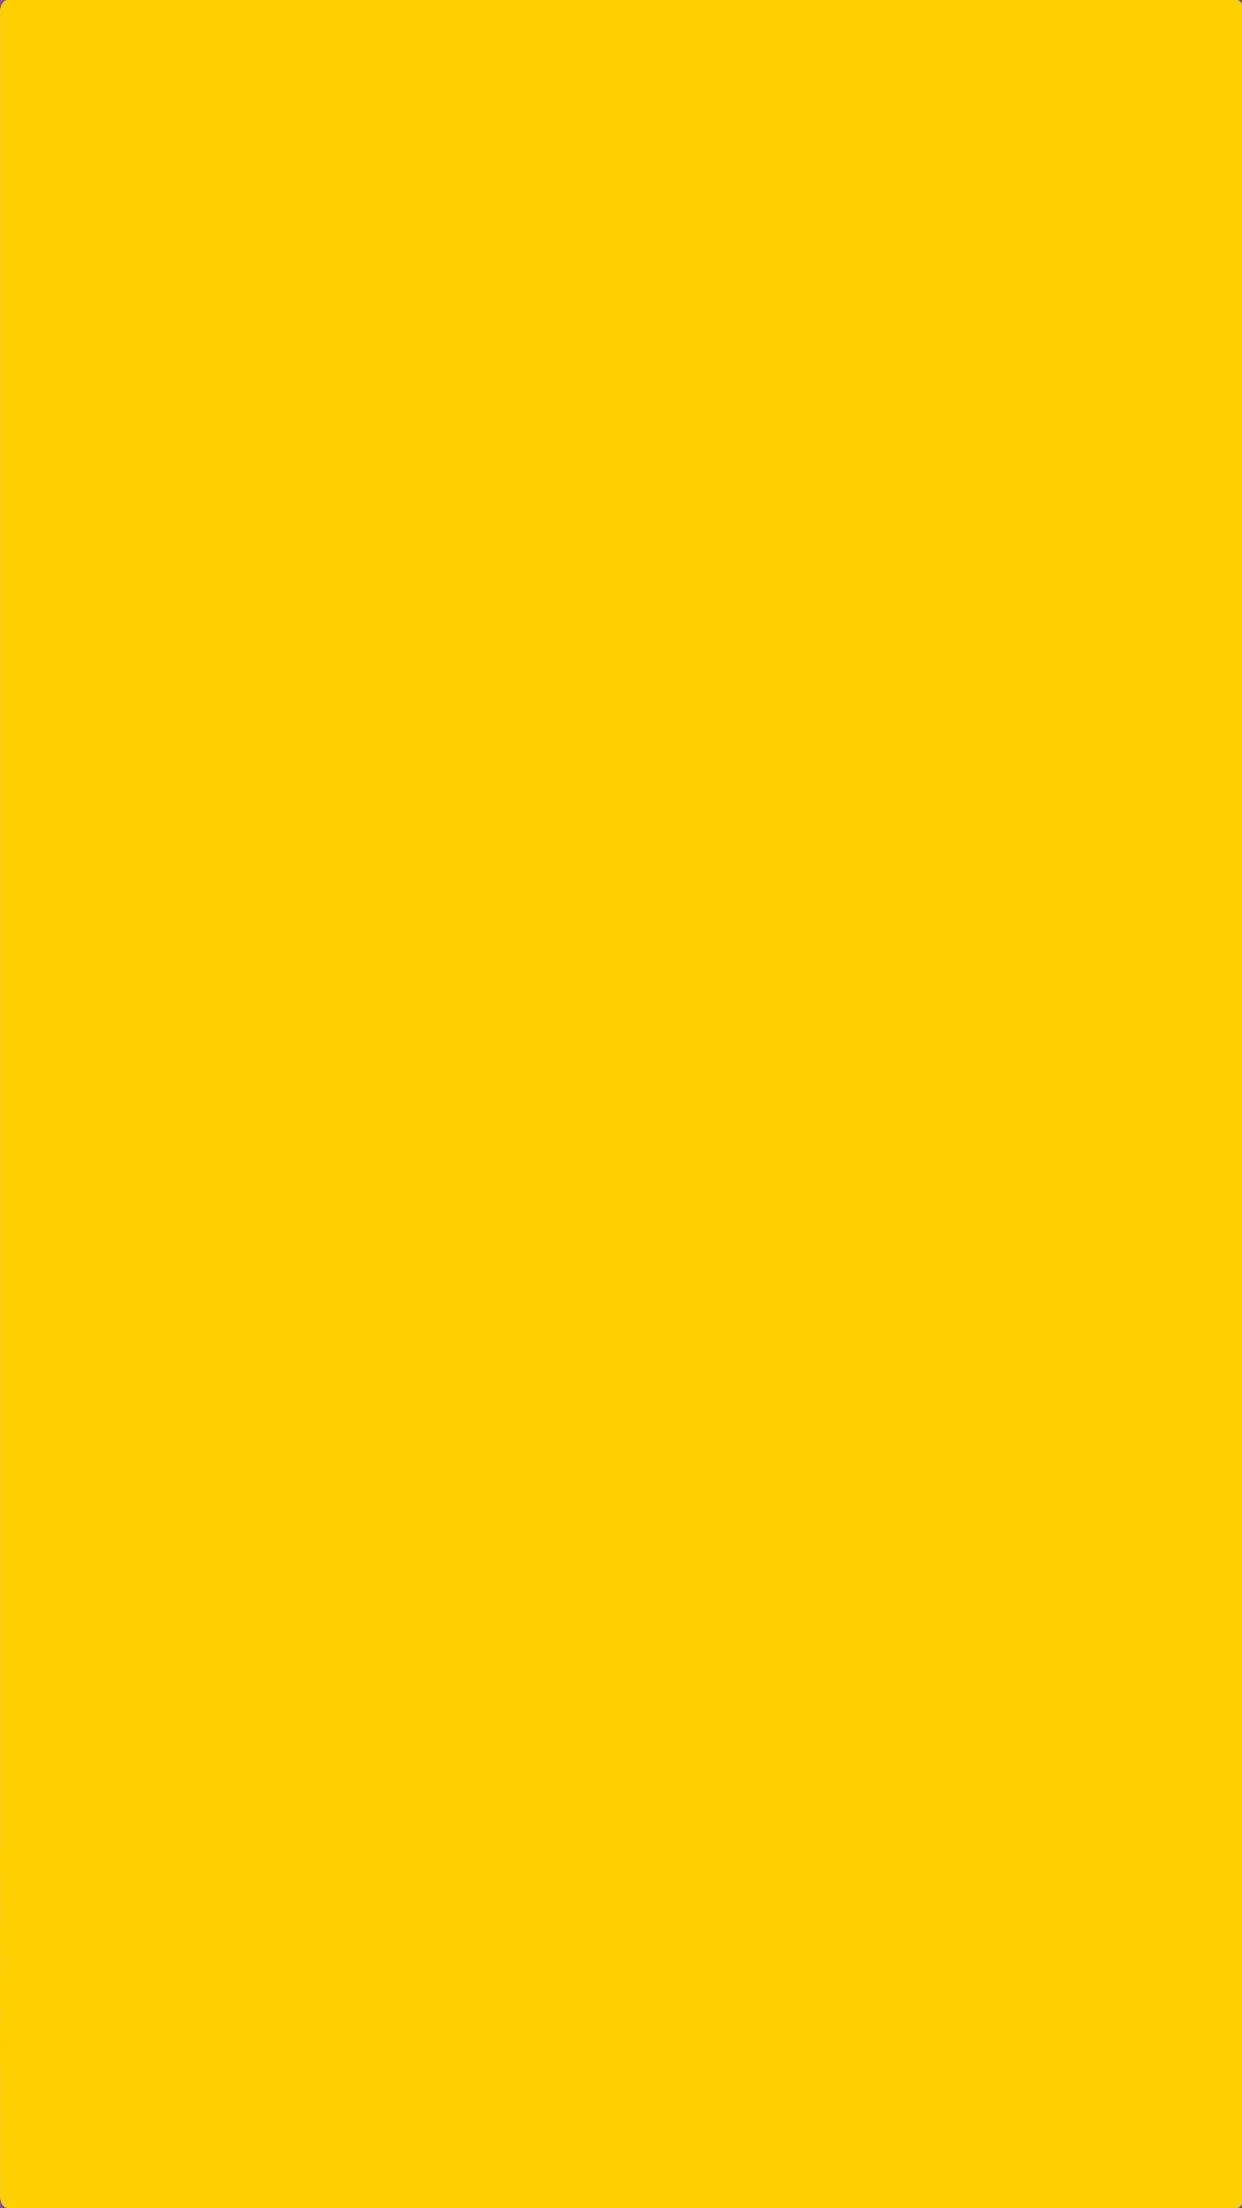 Yellow Iphone X Wallpapers Top Free Yellow Iphone X Backgrounds Wallpaperaccess